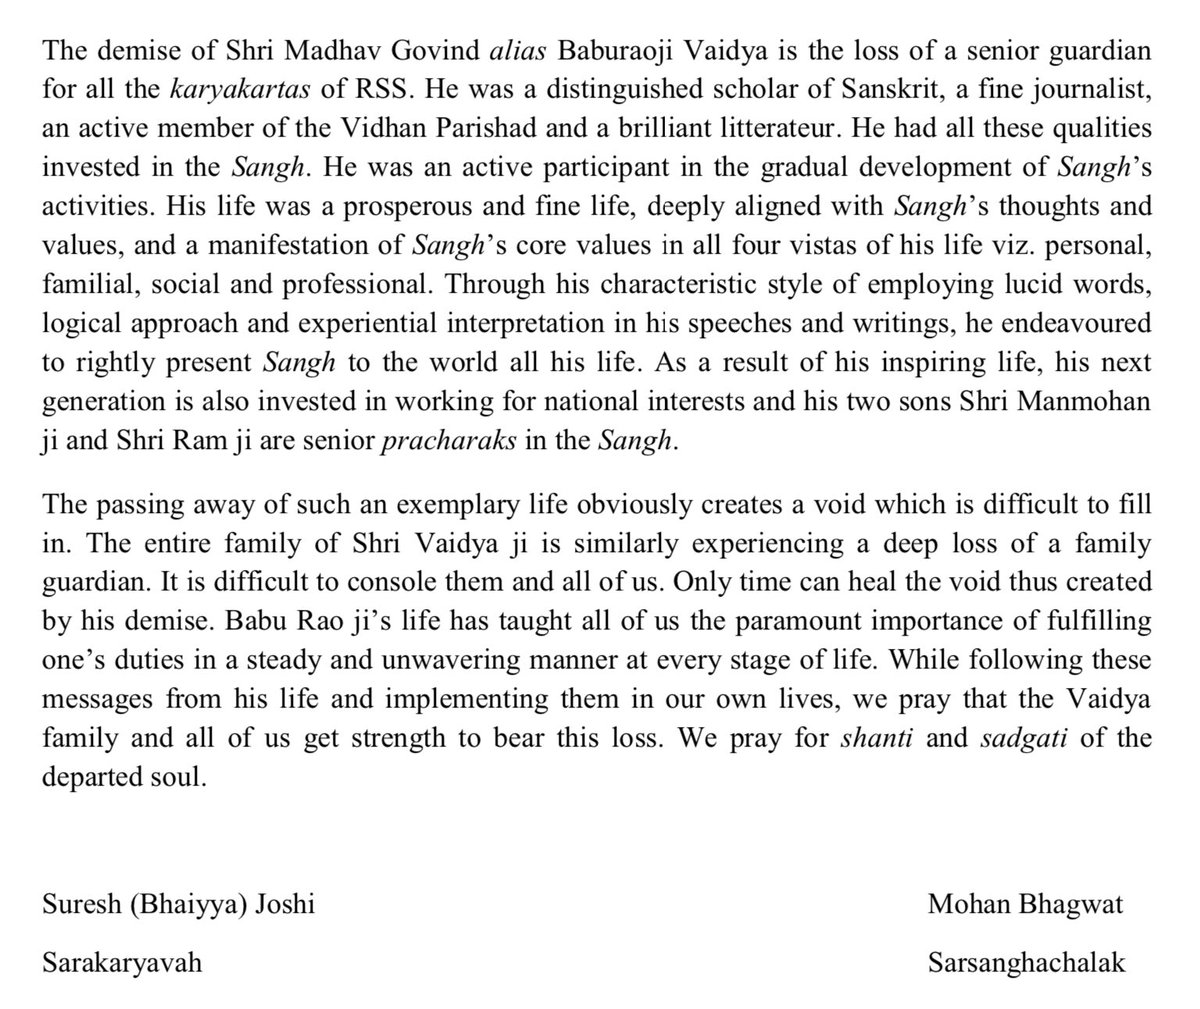 """""""His life was a prosperous and fine life,deeply aligned with Sangh's thoughts and values,and a manifestation of Sangh's core values in all four vistas of his life viz. personal,familial,social and professional."""" Tribute to Shri M.G.Vaidya by Pu. Sarsanghchalak & Maa. Sarkaryavah"""